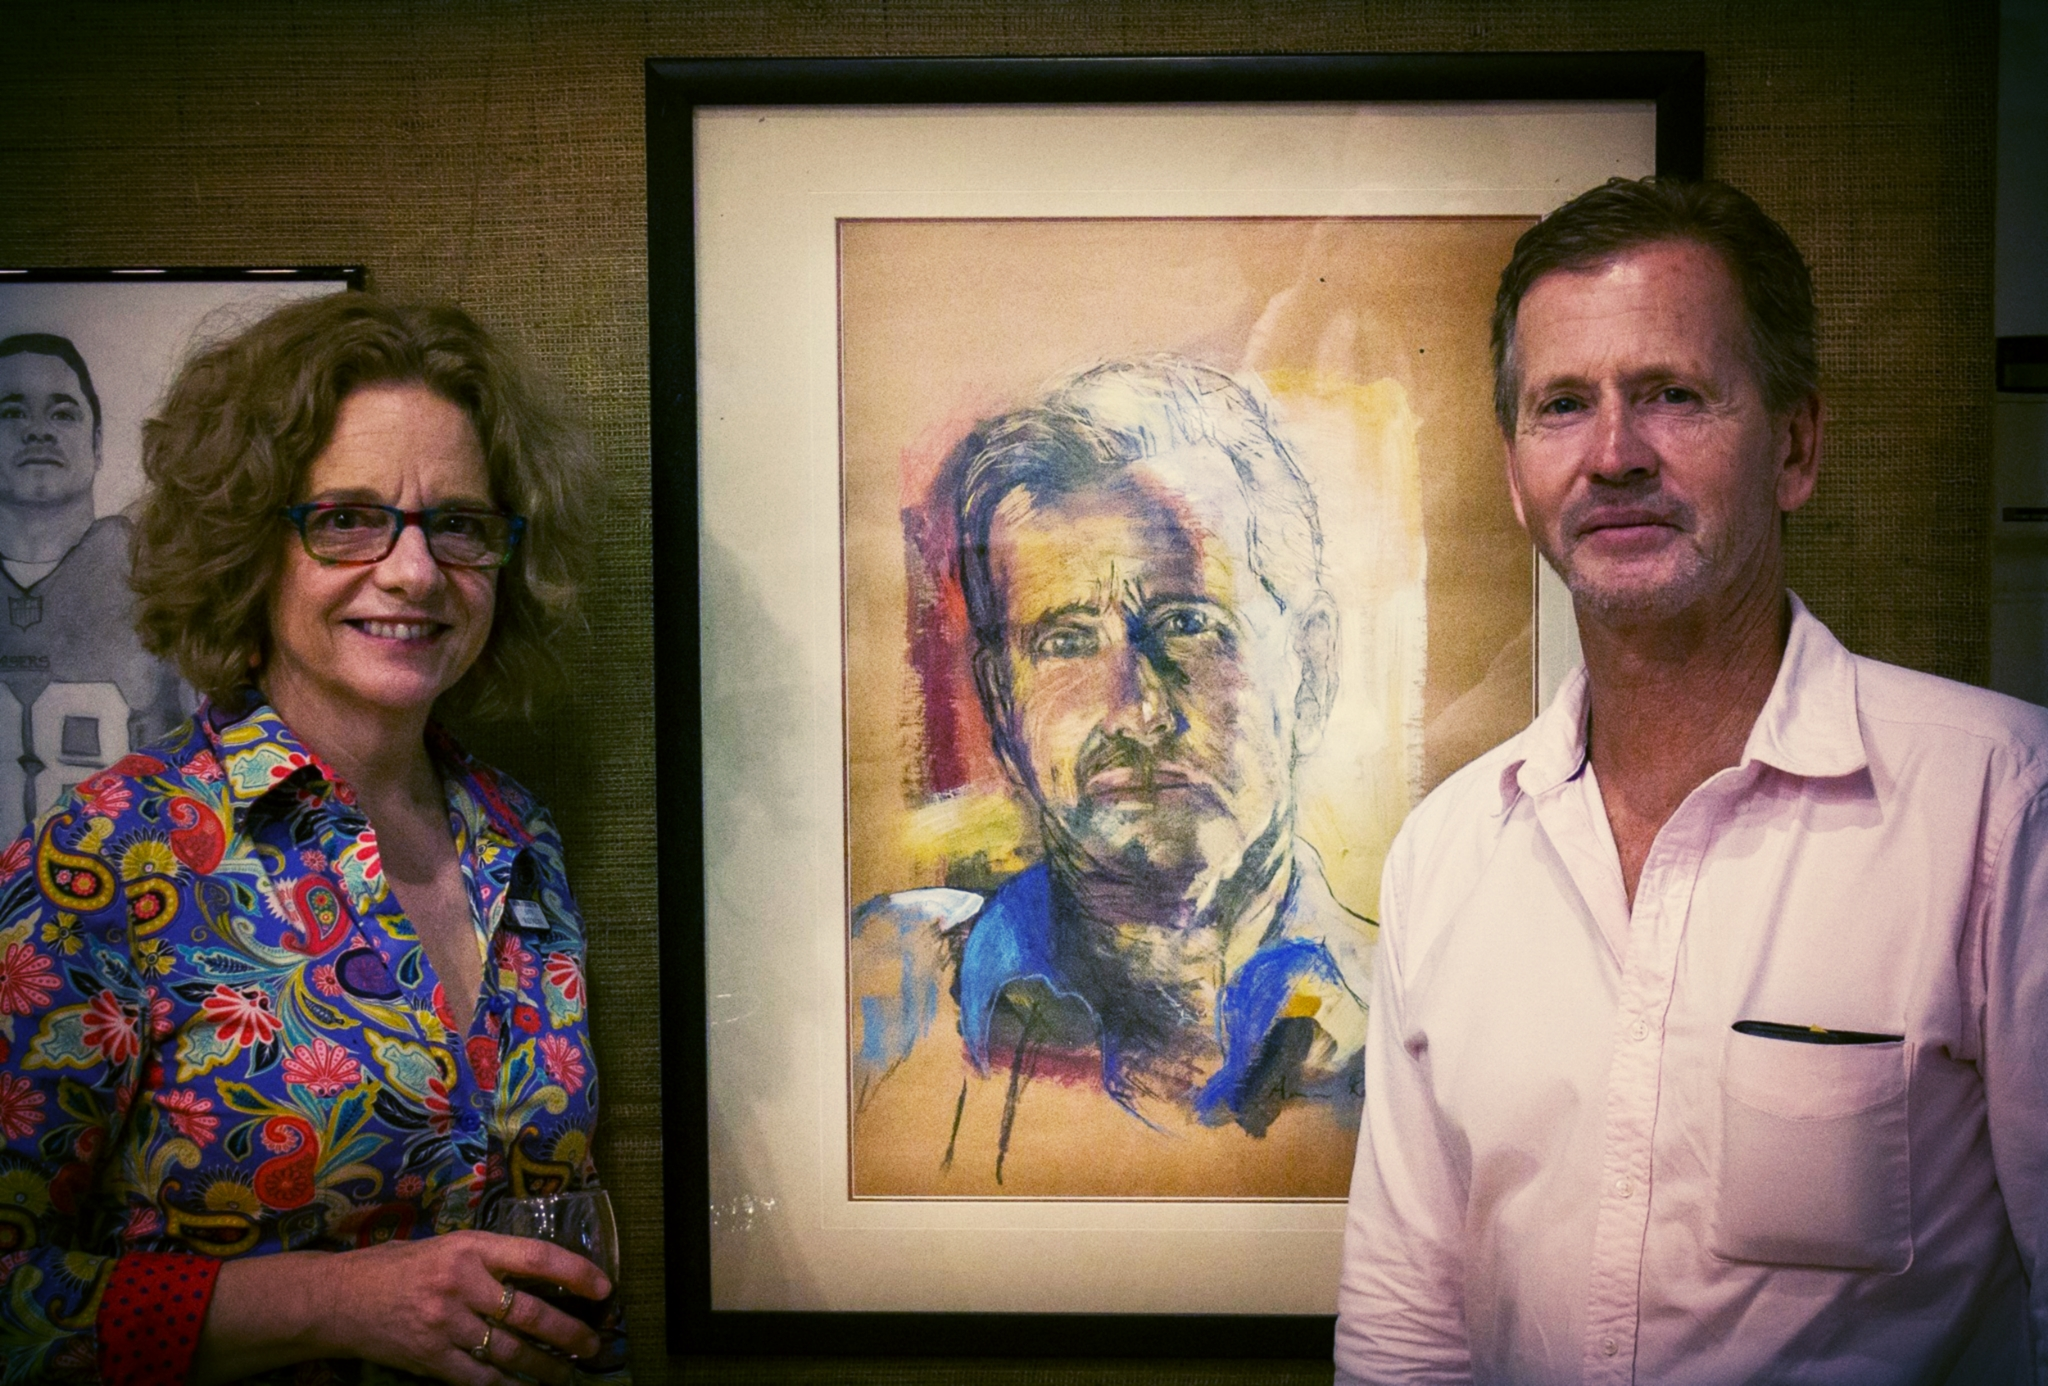 Winner 'Champion Exhibit' Ann Rayment with Model Milton Hoysted in front of 'Looking forward, looking back', charcoal, pastel and acrylic on kraft cardboard.